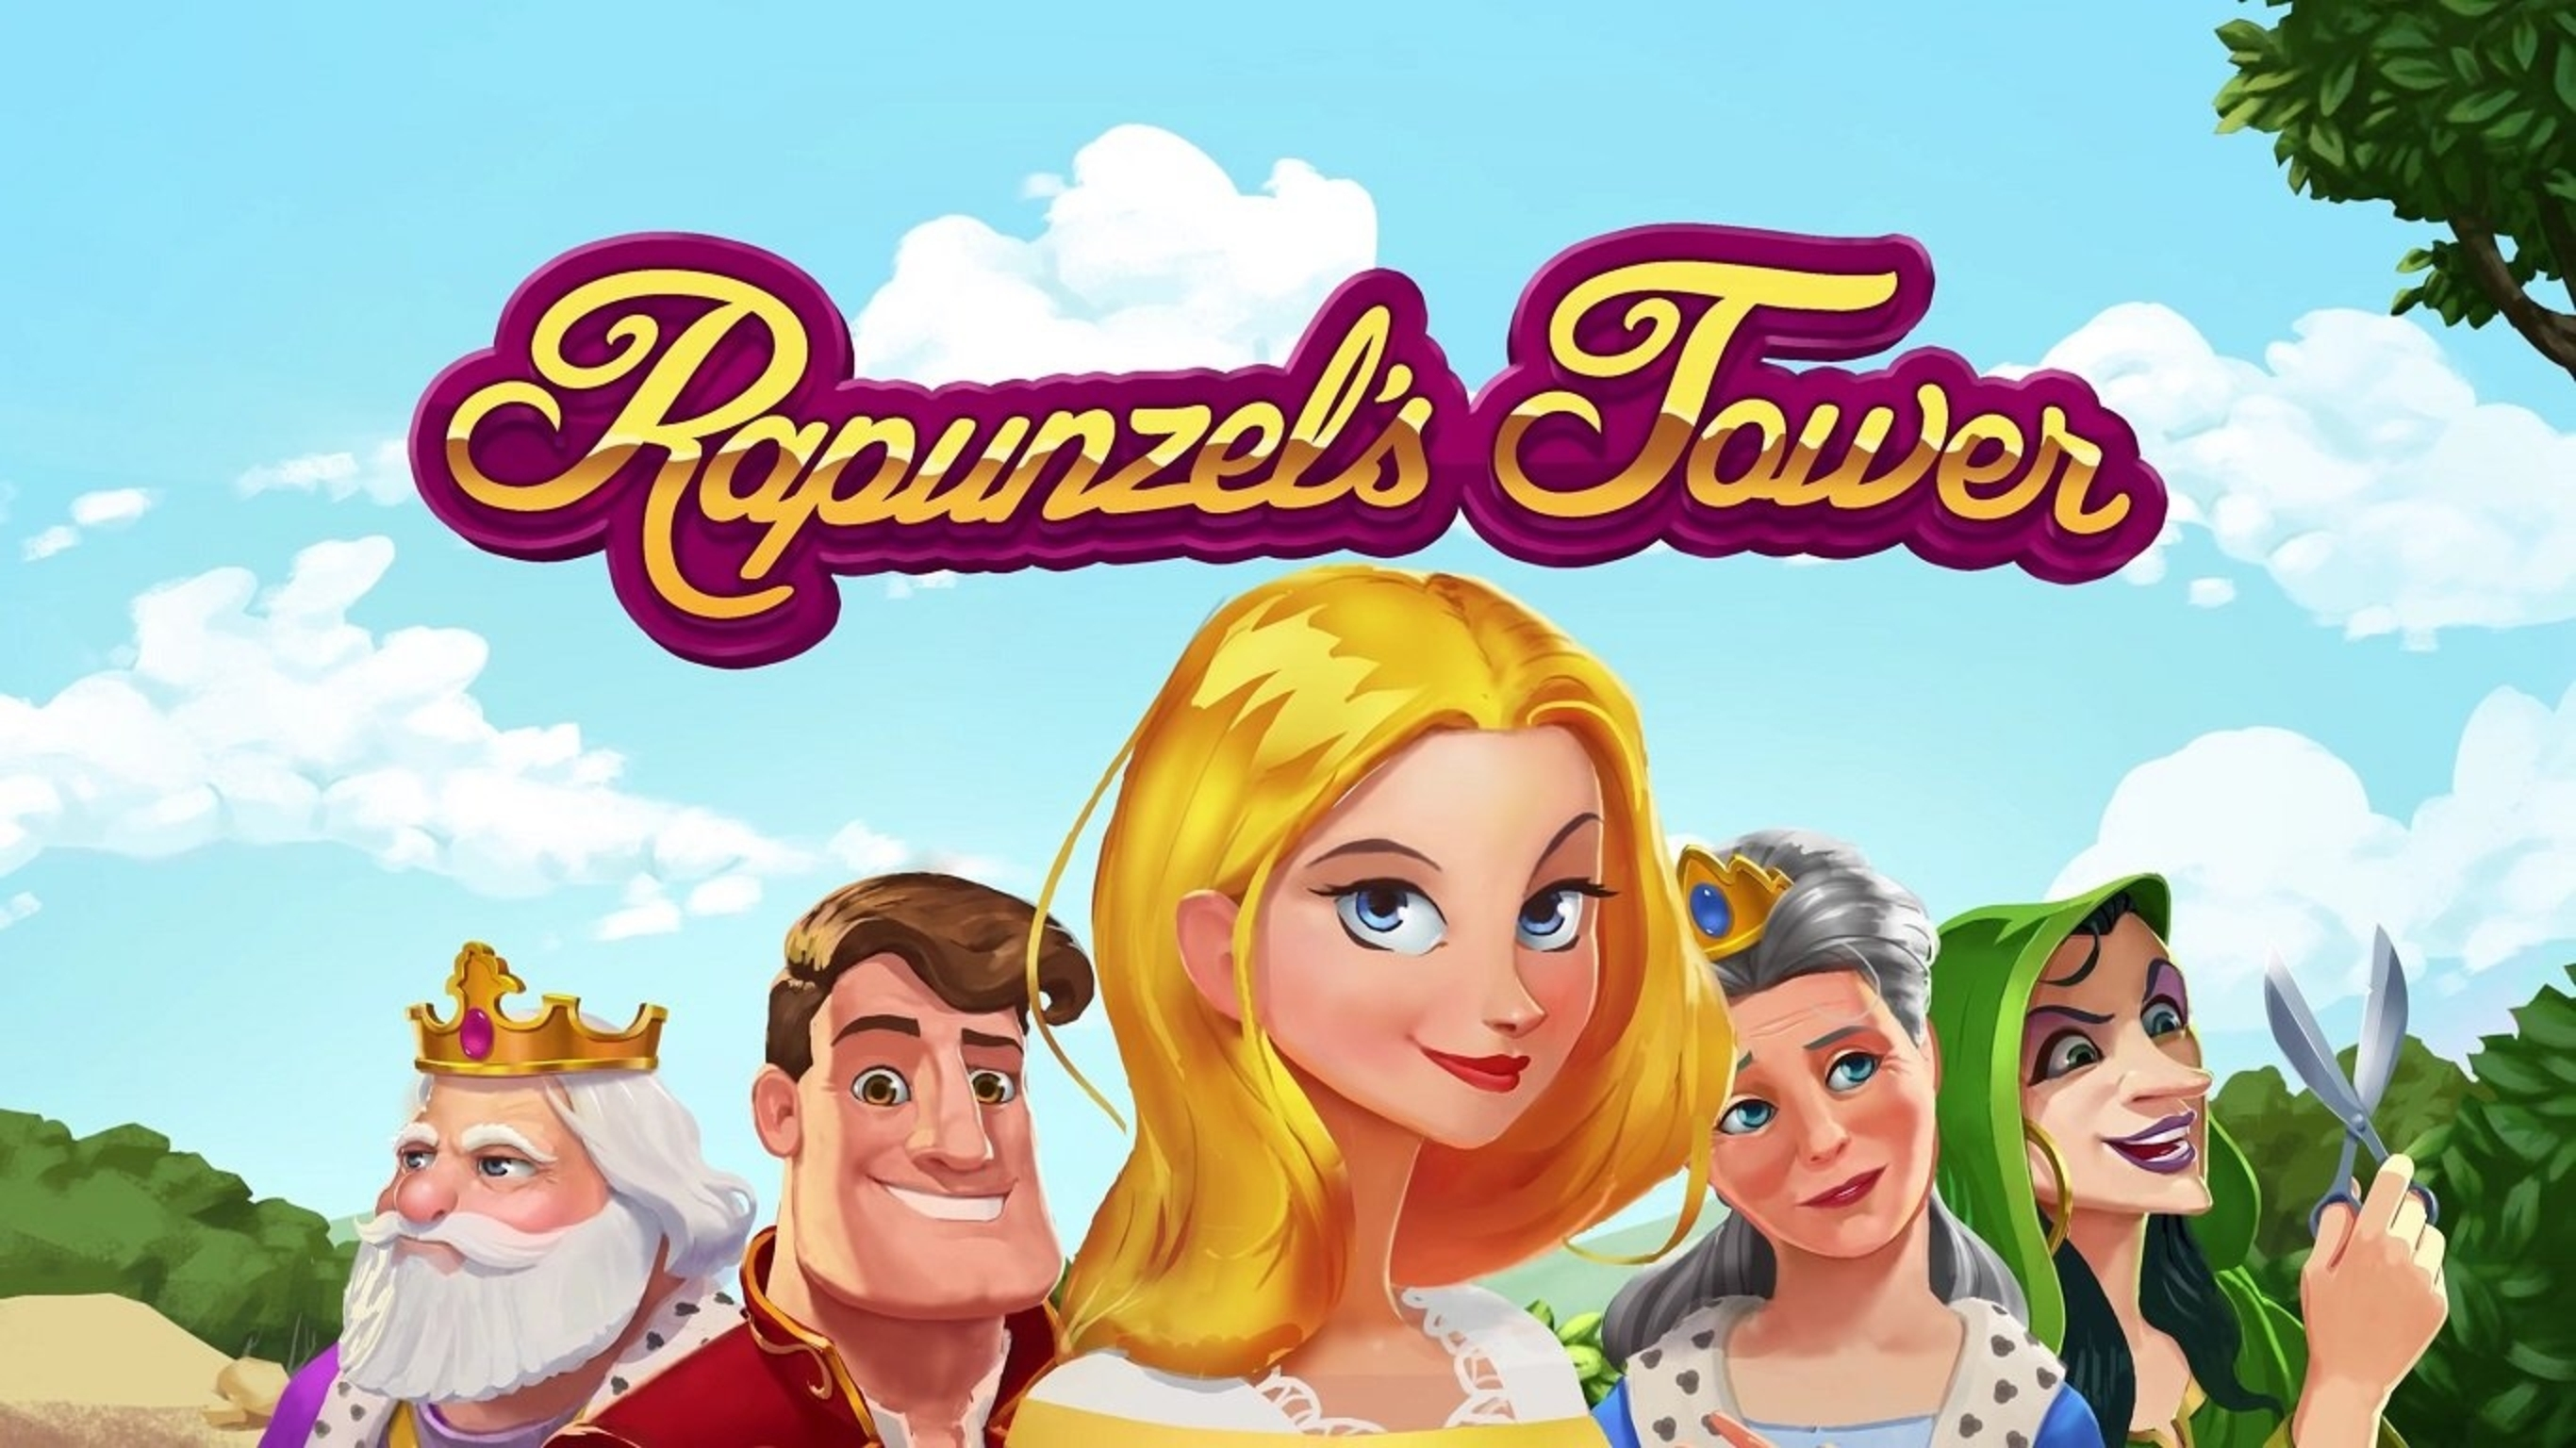 The Rapunzel's Tower Online Slot Demo Game by Quickspin